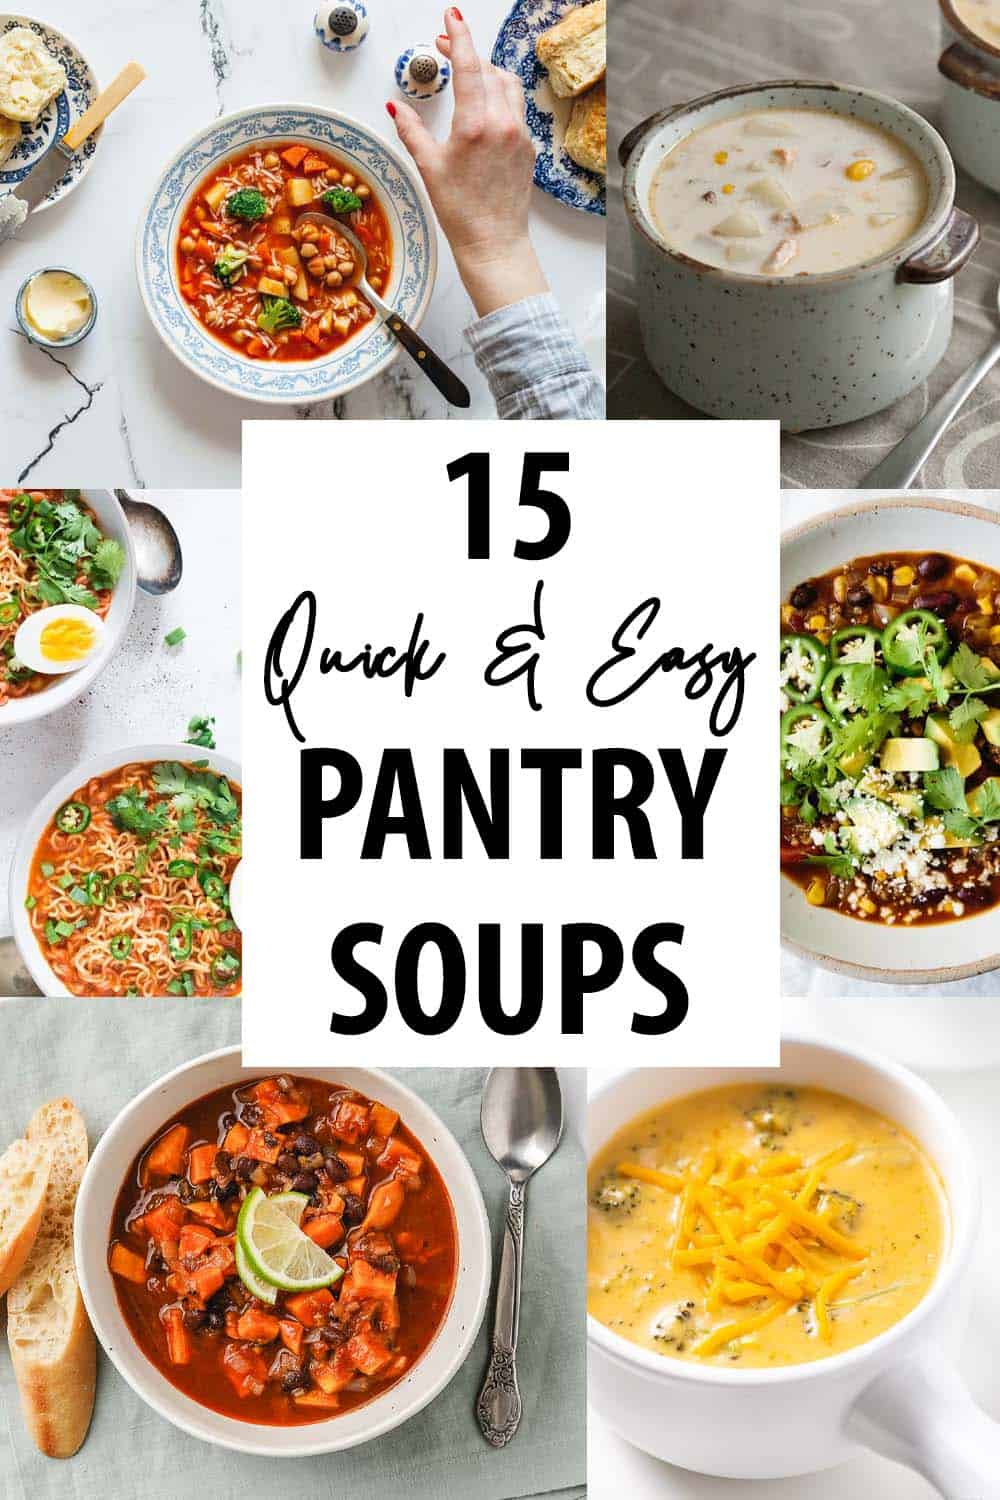 Quick and Easy Pantry Soup Recipes Collage